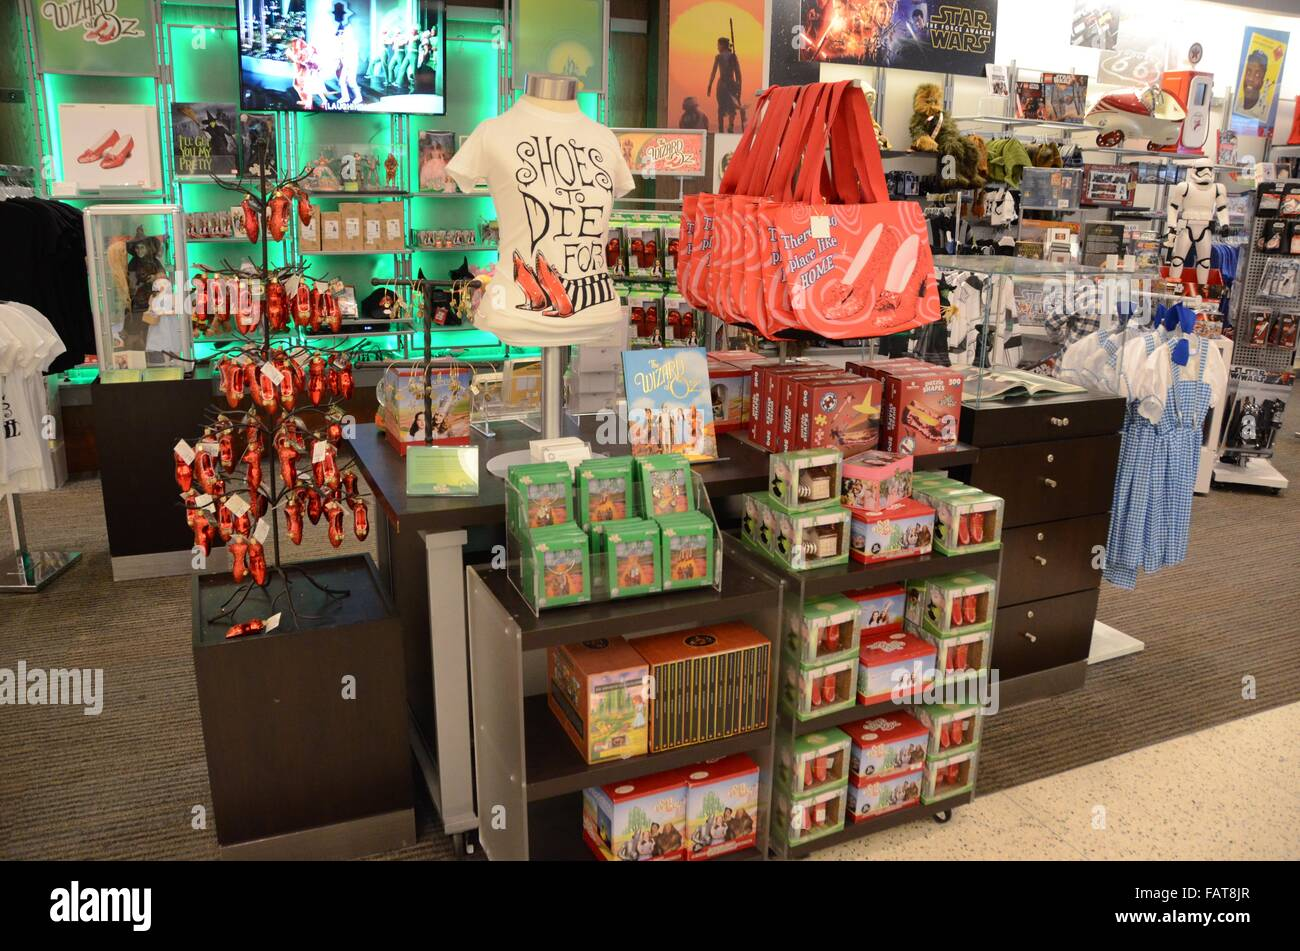 National Museum of American History wizard of oz gift shop display - Stock Image